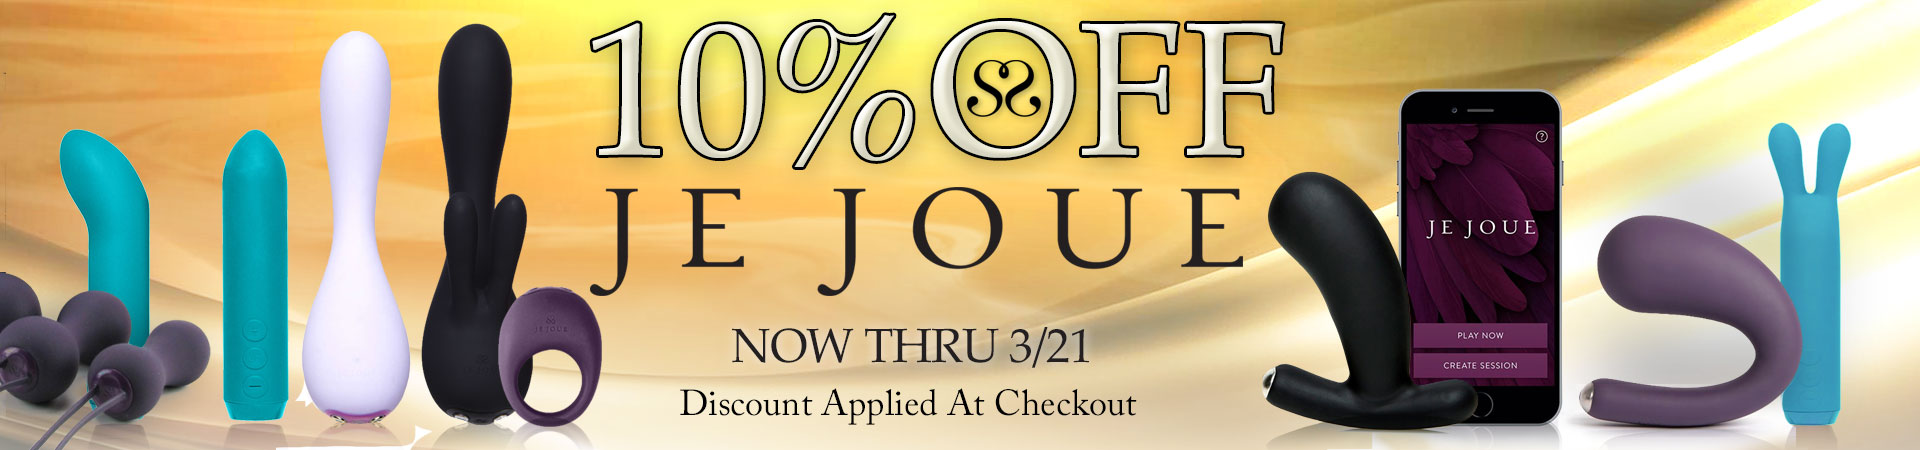 10% Off Je Joue - Now Thru 3/21 - Discount Applied At Checkout